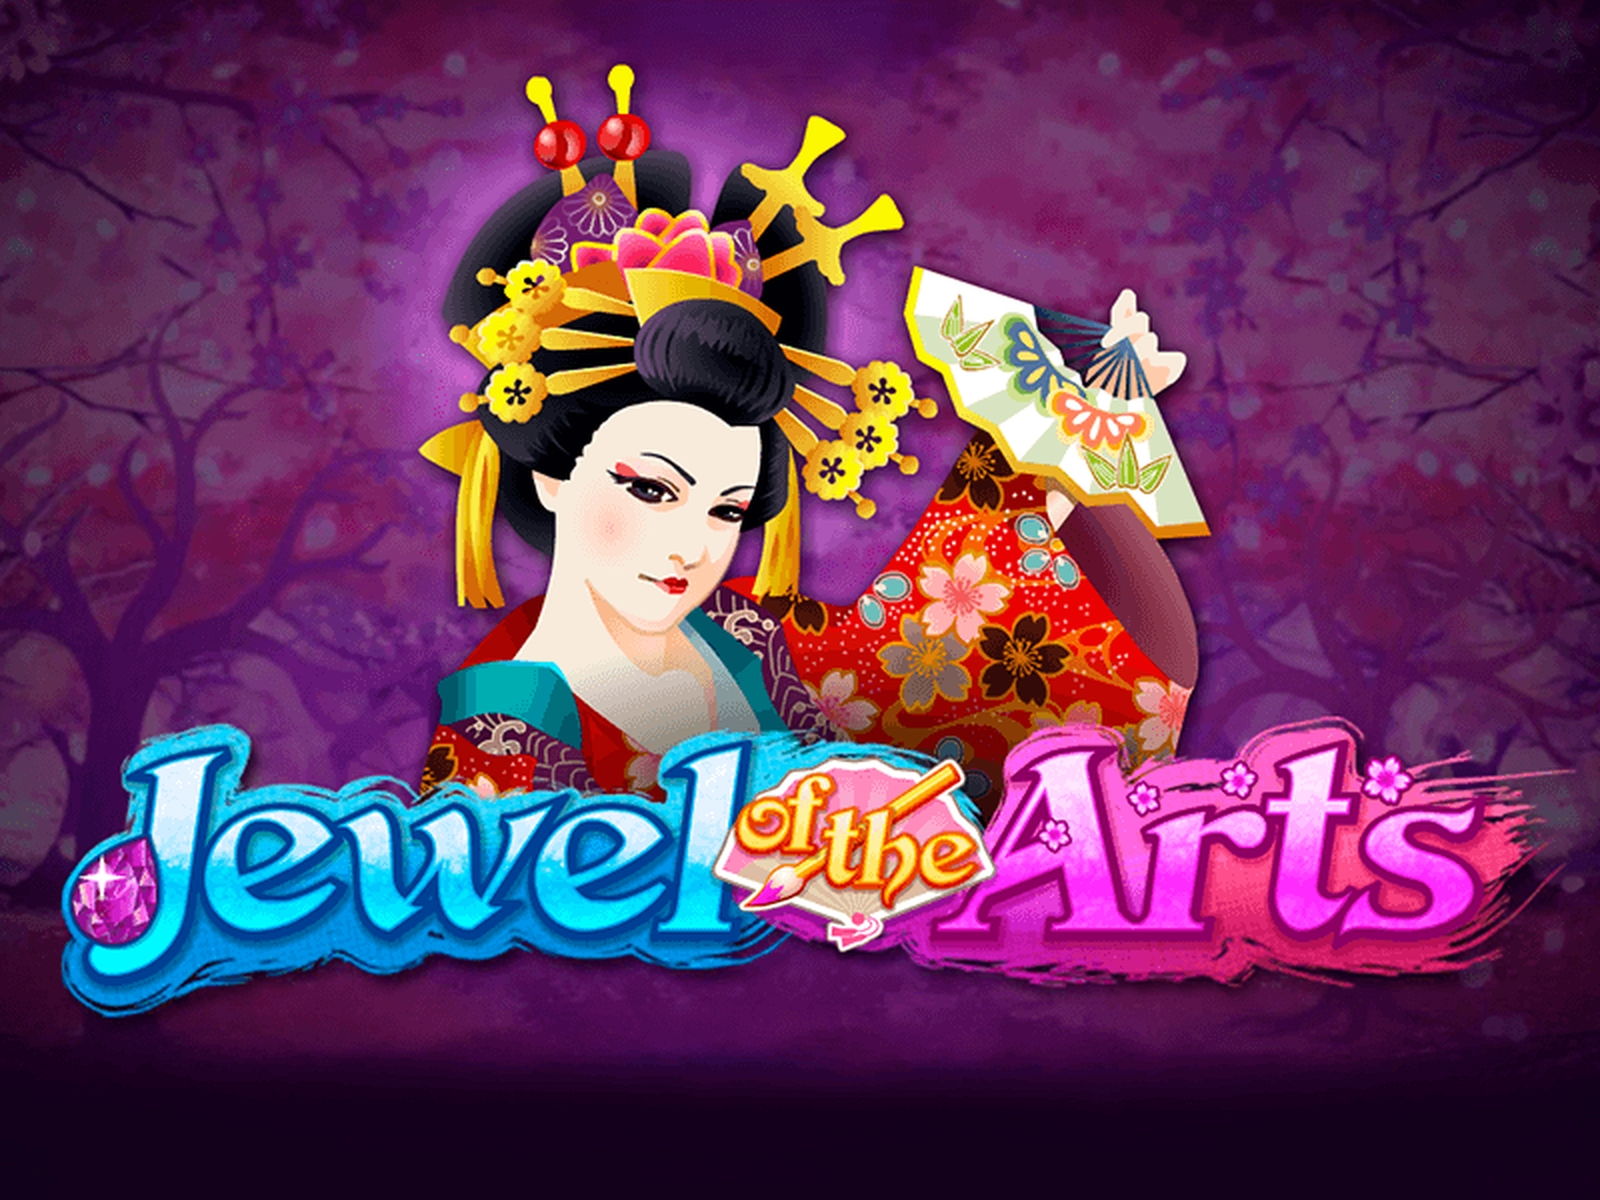 The Jewel of the Arts Online Slot Demo Game by IGT